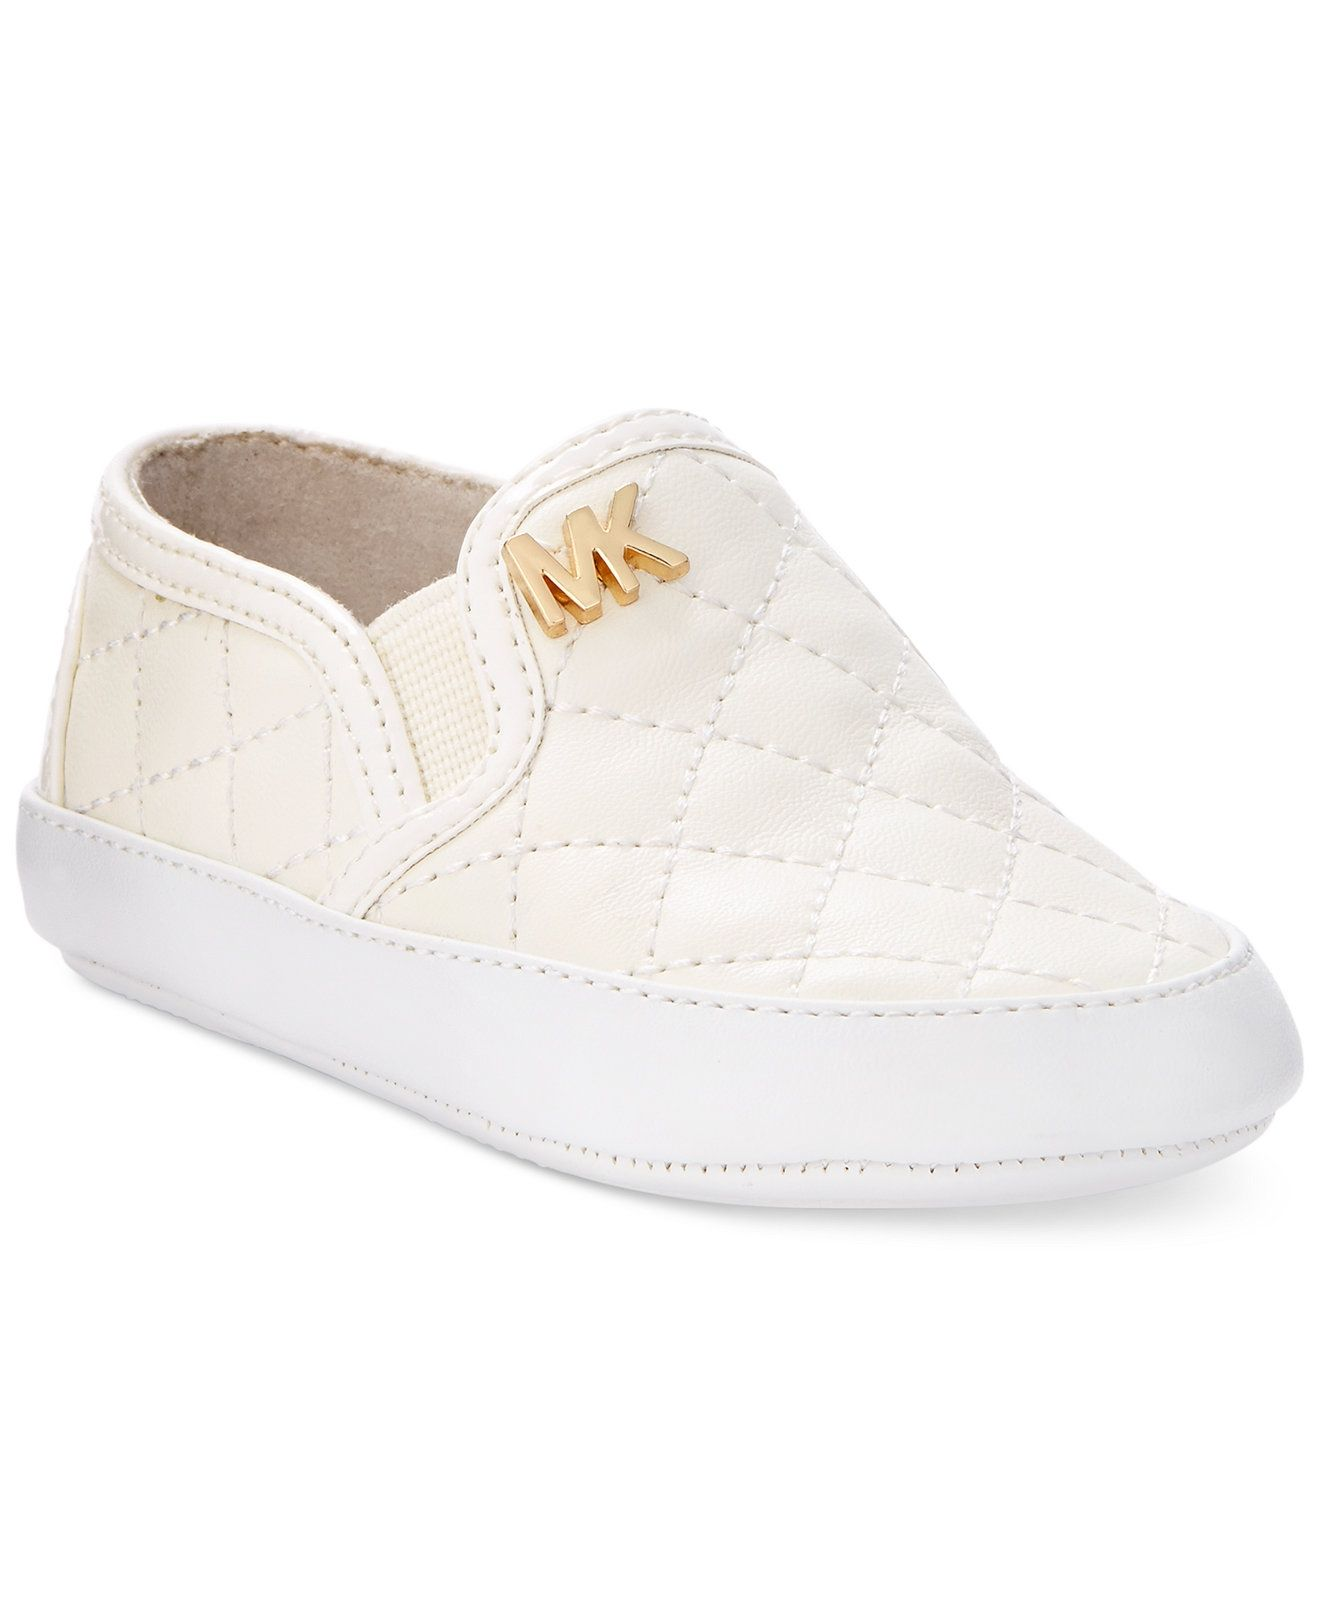 Baby girl shoes, Girls shoes, Kid shoes